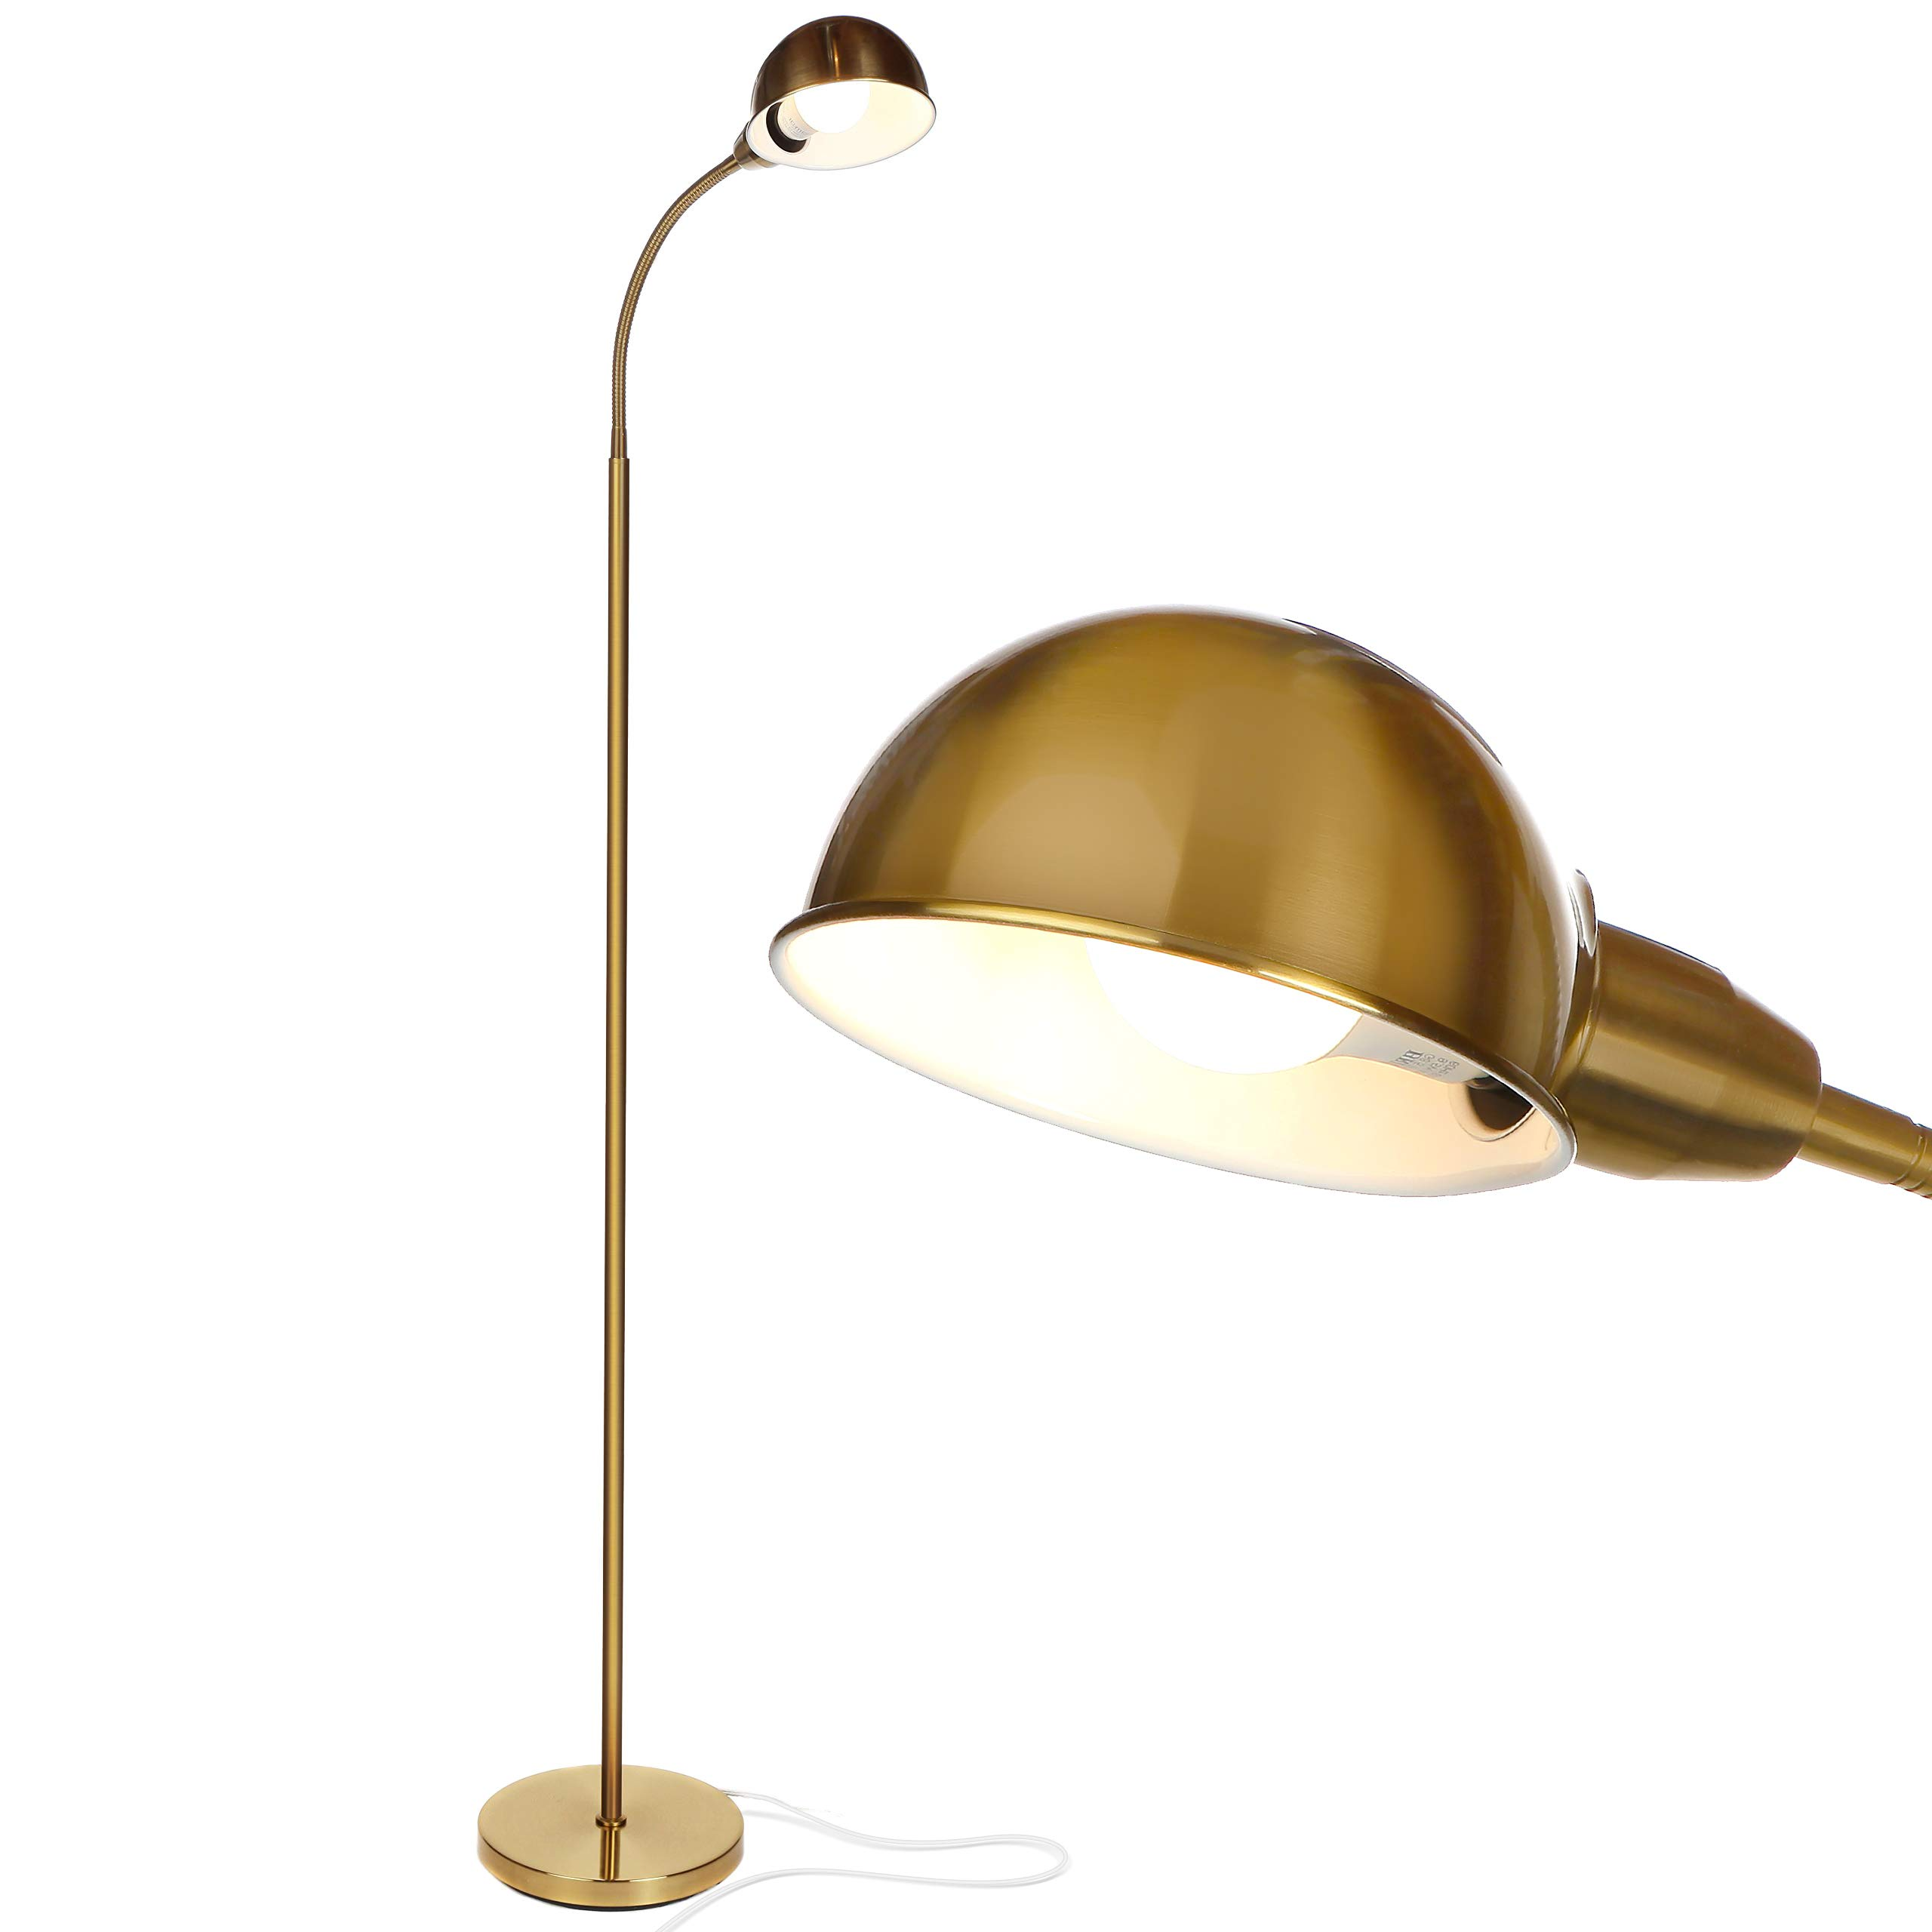 Brightech Regent - LED Reading, Craft & Task Floor Lamp - Free Standing Modern Pole Light with Adjustable Gooseneck - Tall Office Reading Light Goes Over Desk - Antique Brass by Brightech